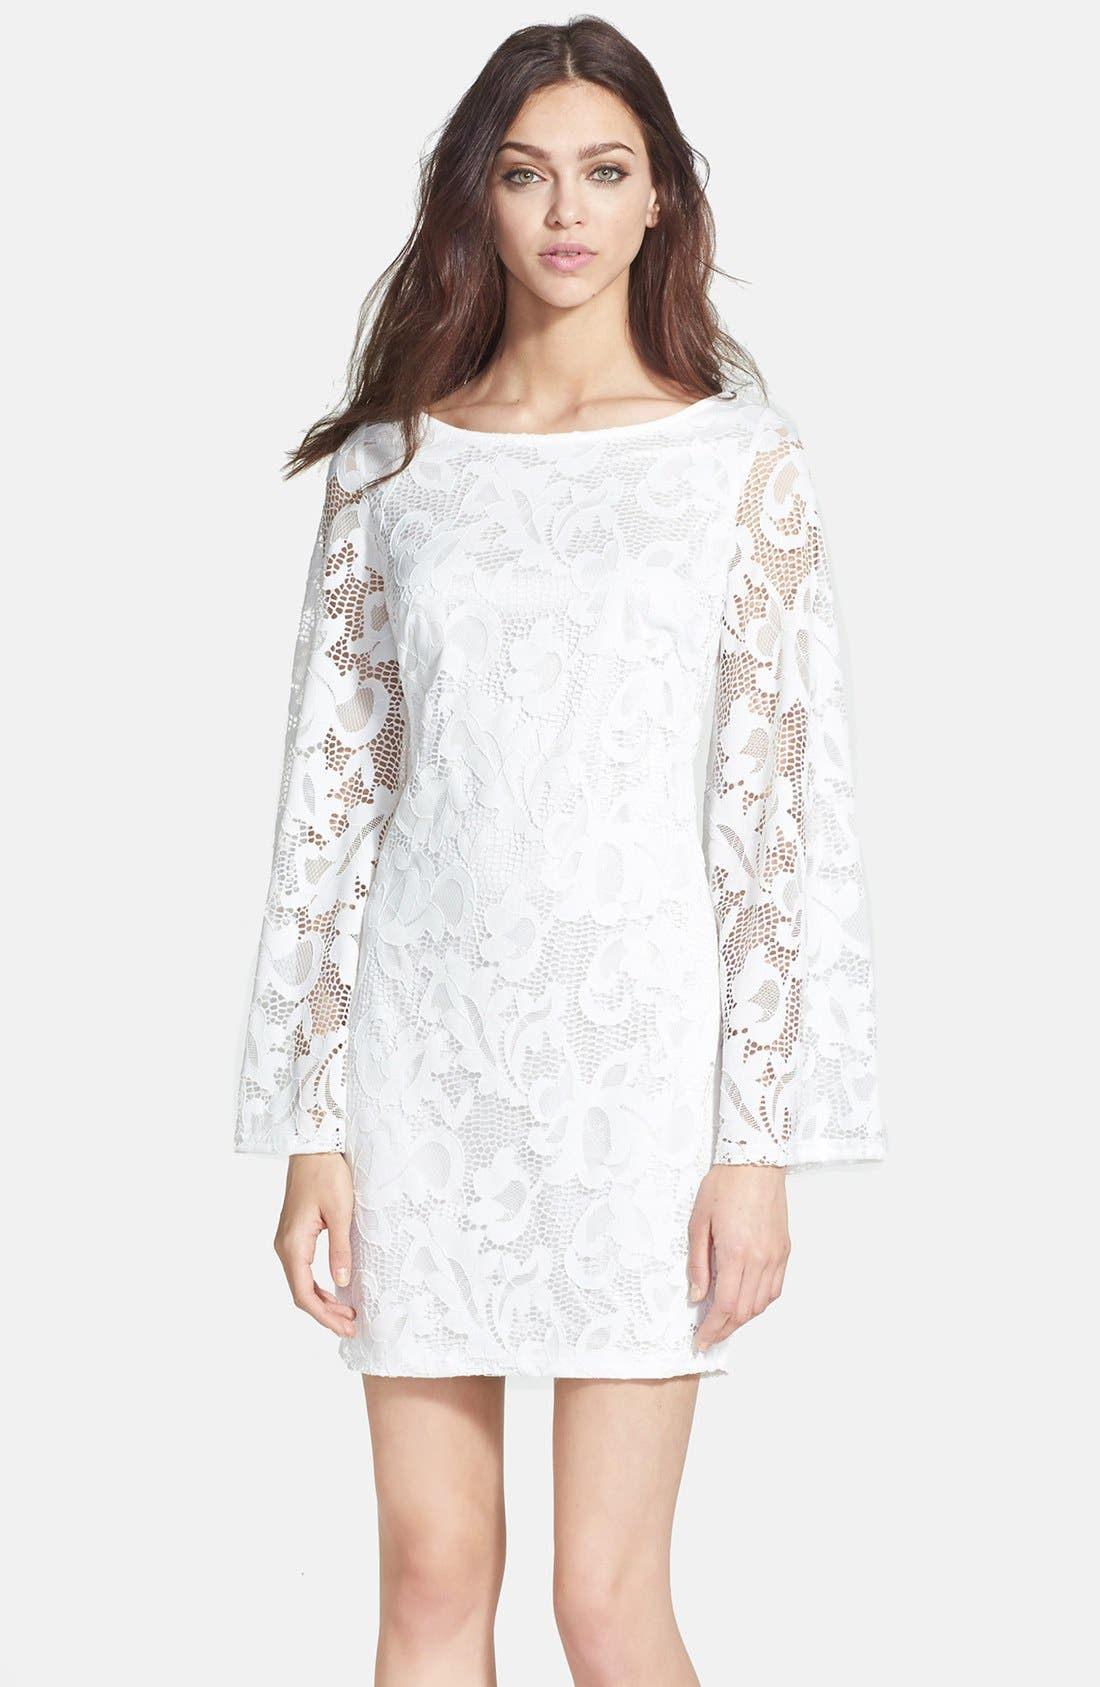 Main Image - Alexia Admor Lace Shift Dress